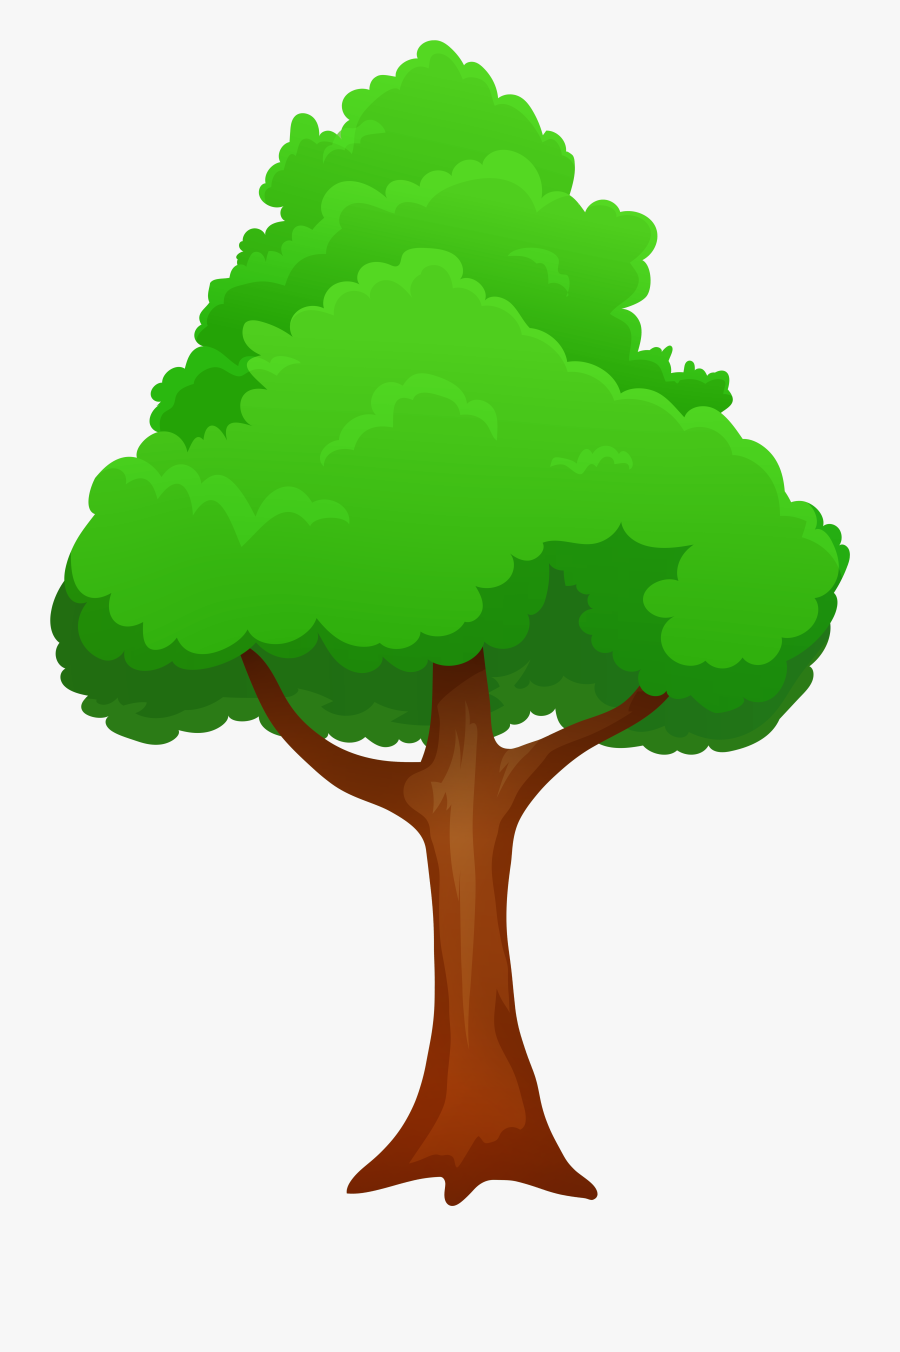 Green Tree Png Clipart Transparent Background Cartoon Tree Free Transparent Clipart Clipartkey Elevate your workflow with cartoon tree pack asset from atom studio. green tree png clipart transparent